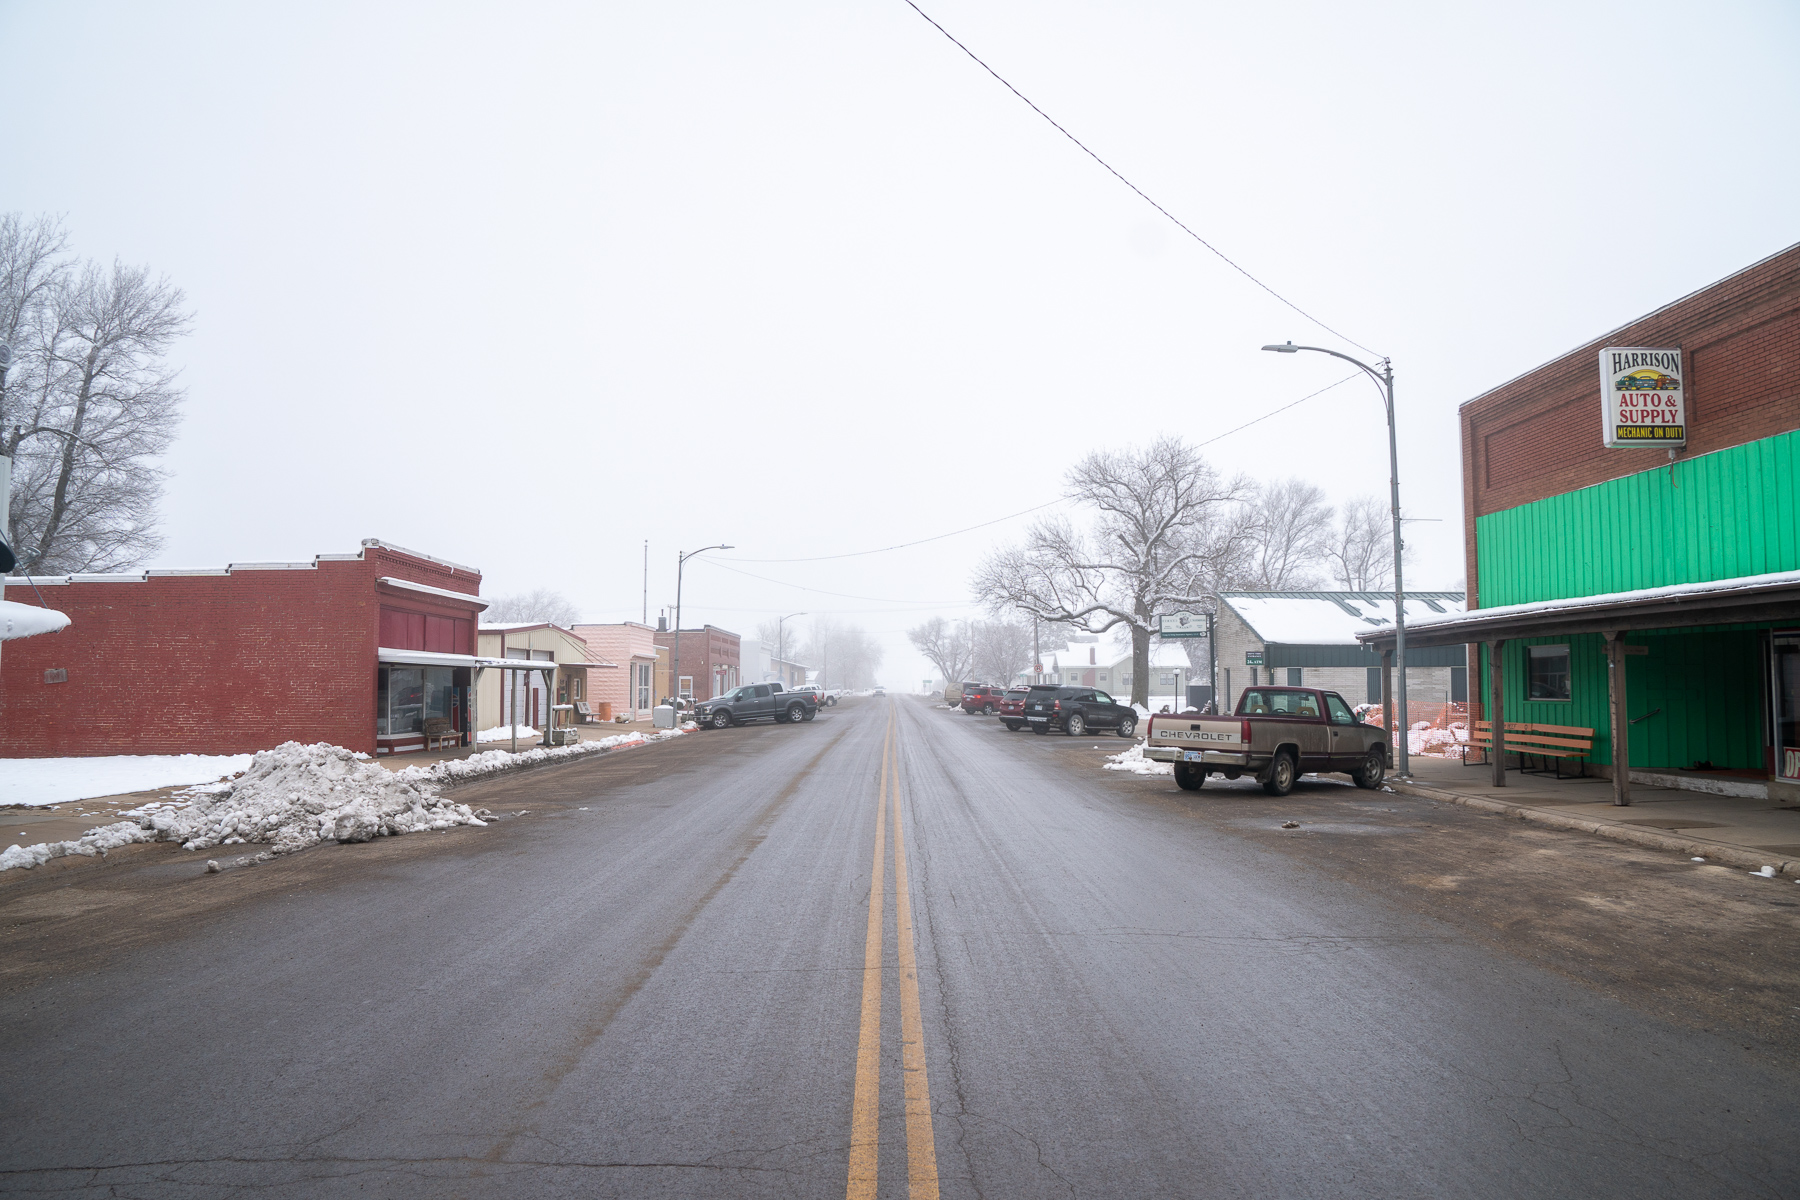 Main Street in Hope, Kansas, on January 15, 2019. Only a few businesses line the street, including the local bank, the Post Office, and an auto parts store.